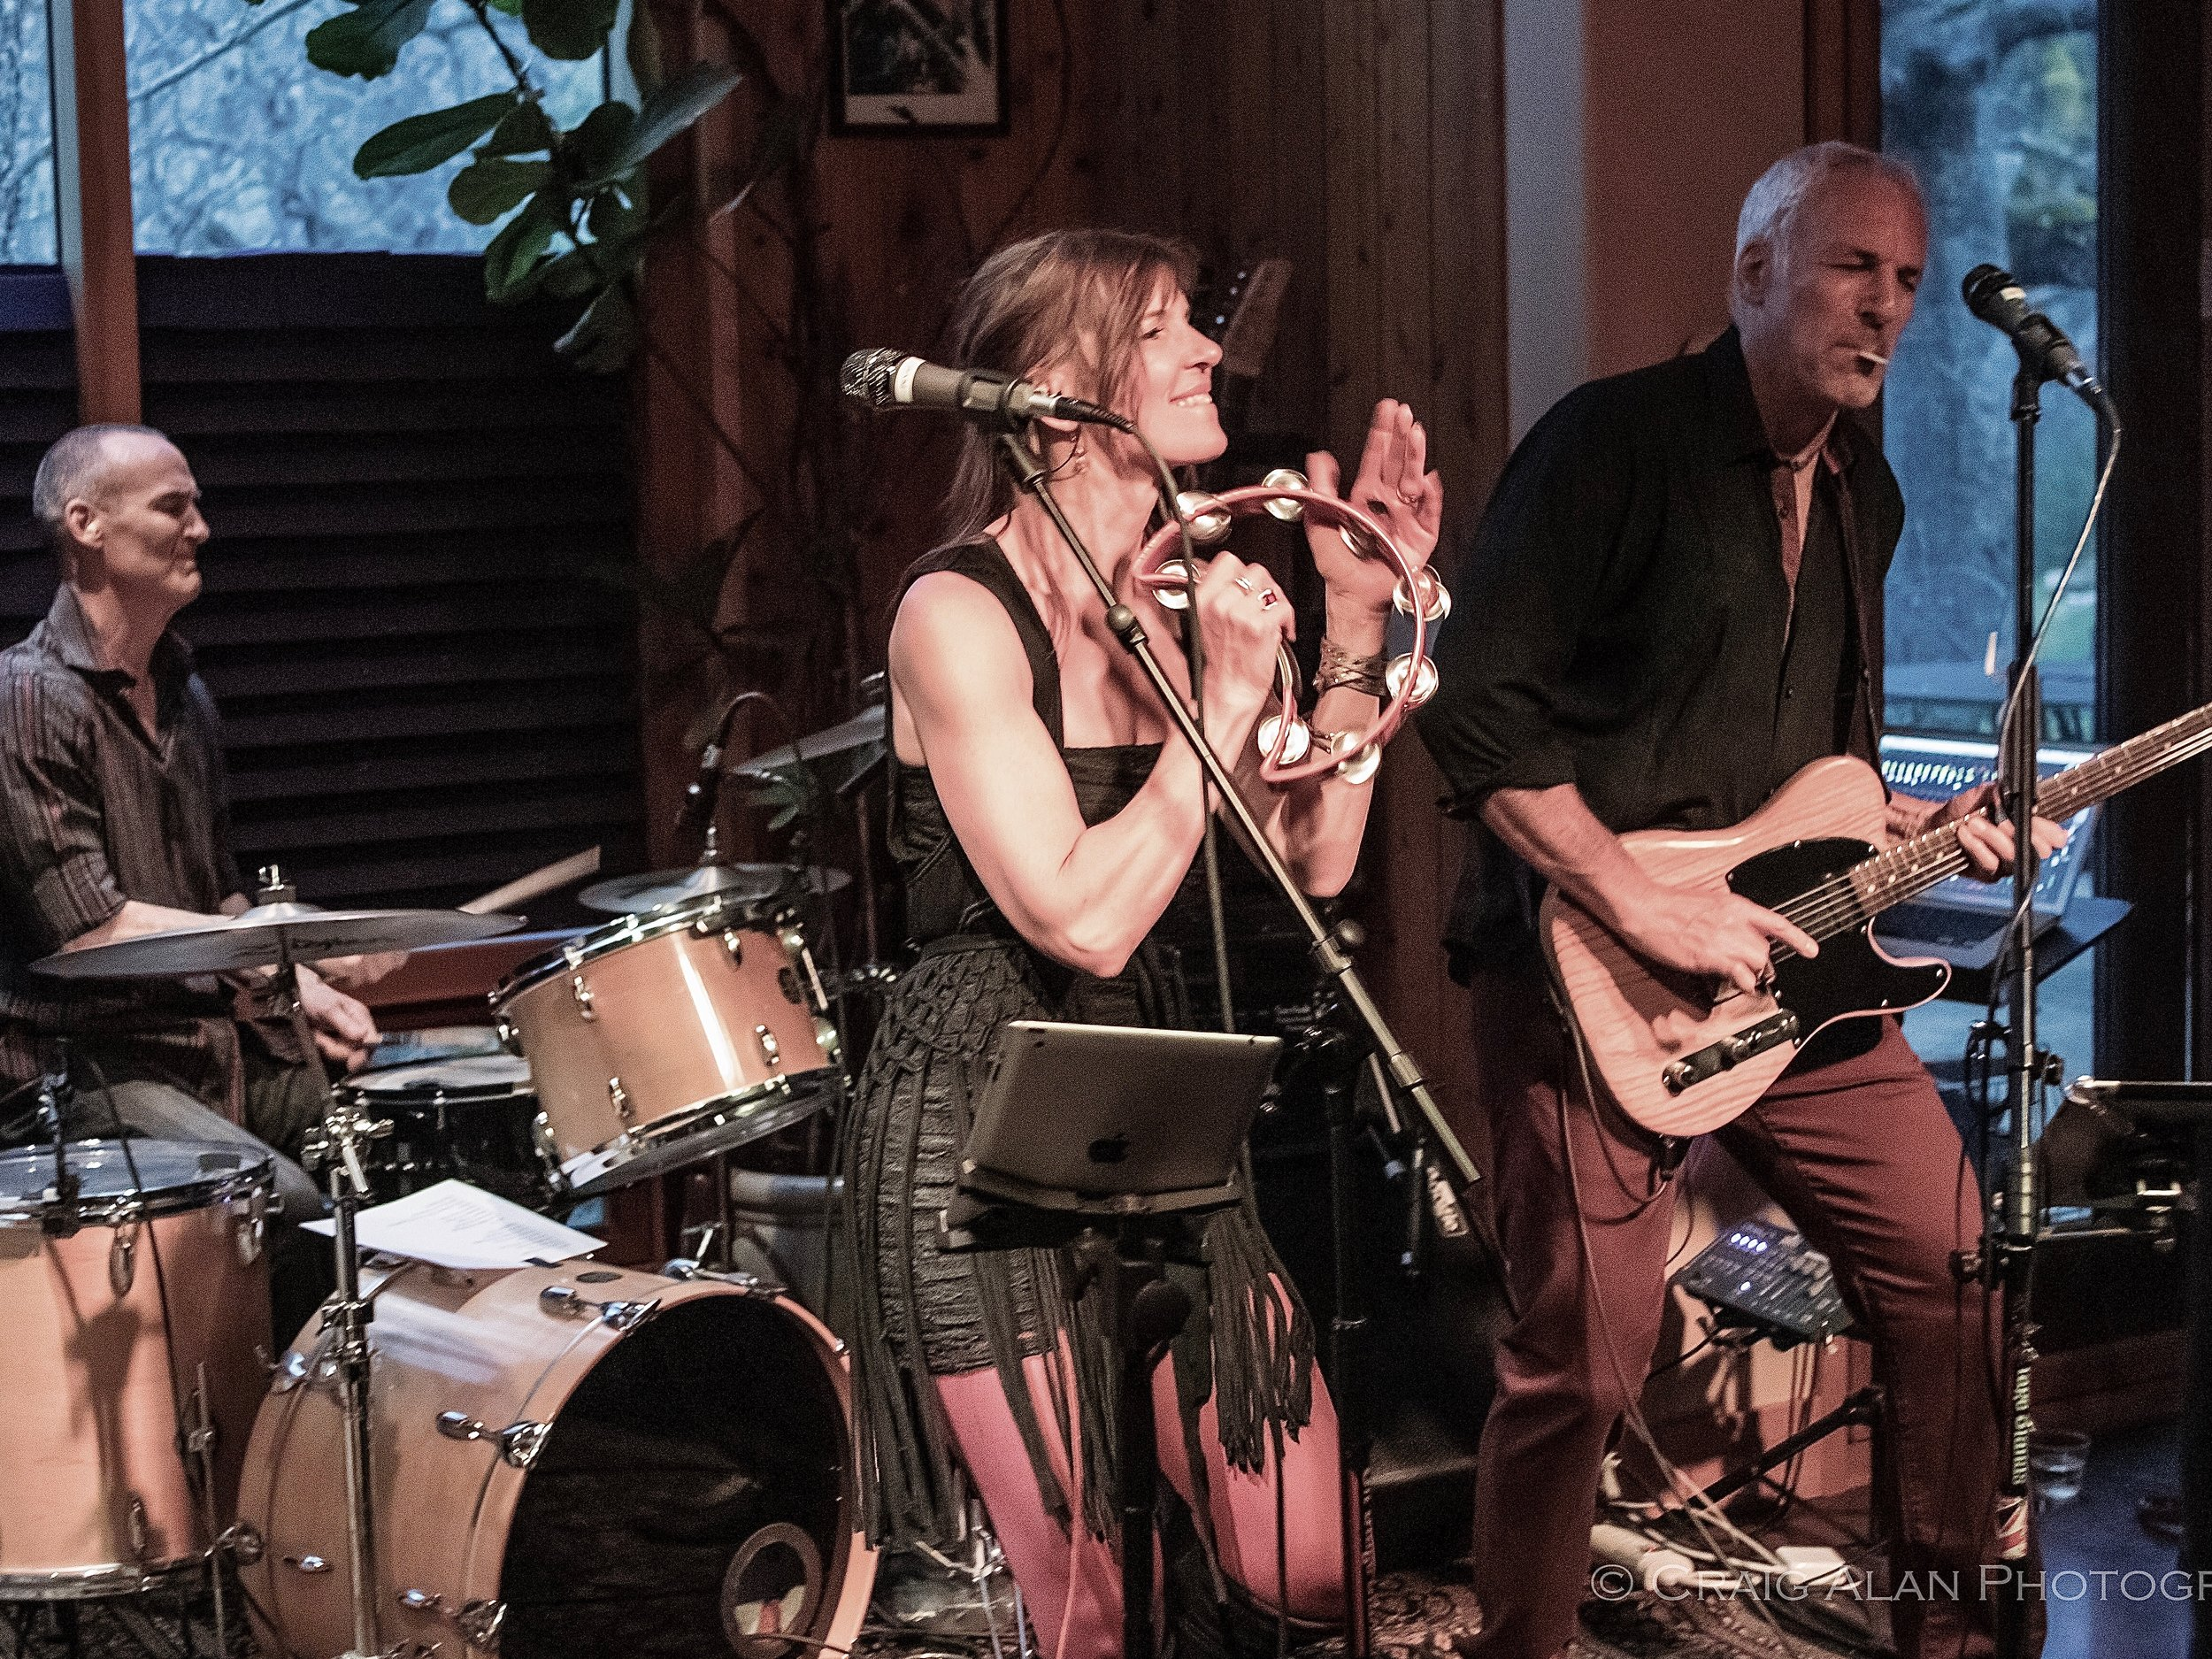 Jeff Pevar, Inger Nova Jorgensen & Matthew Kriemelman at The Stone House with LOVEBITE band. Photo by Craig Alan Photography